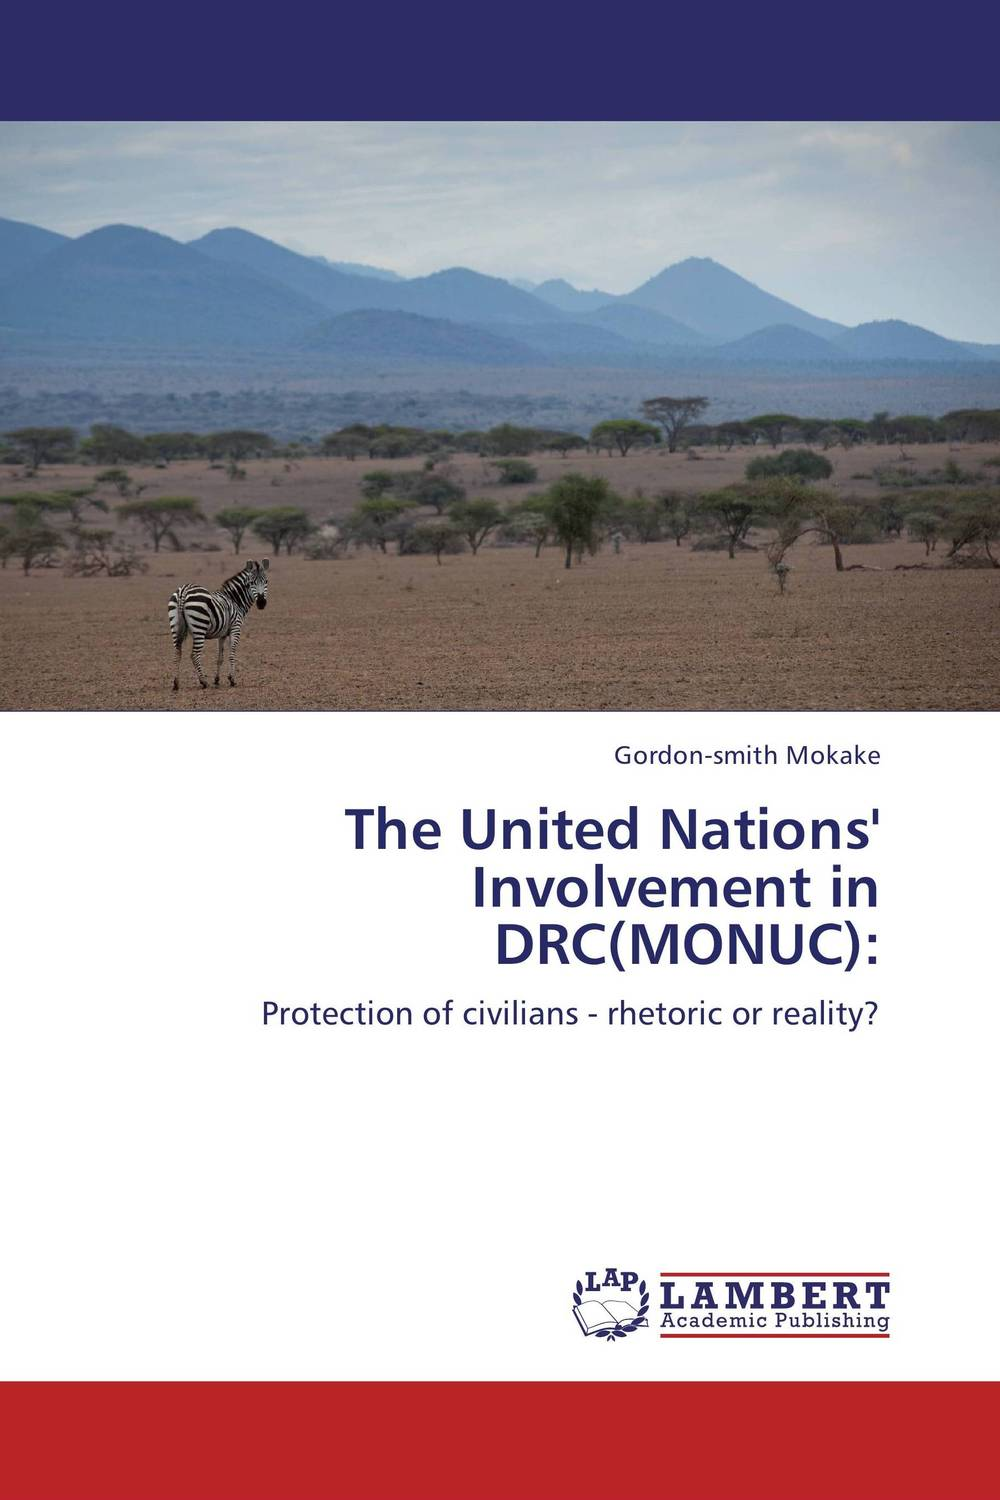 The United Nations' Involvement in DRC(MONUC): united as one